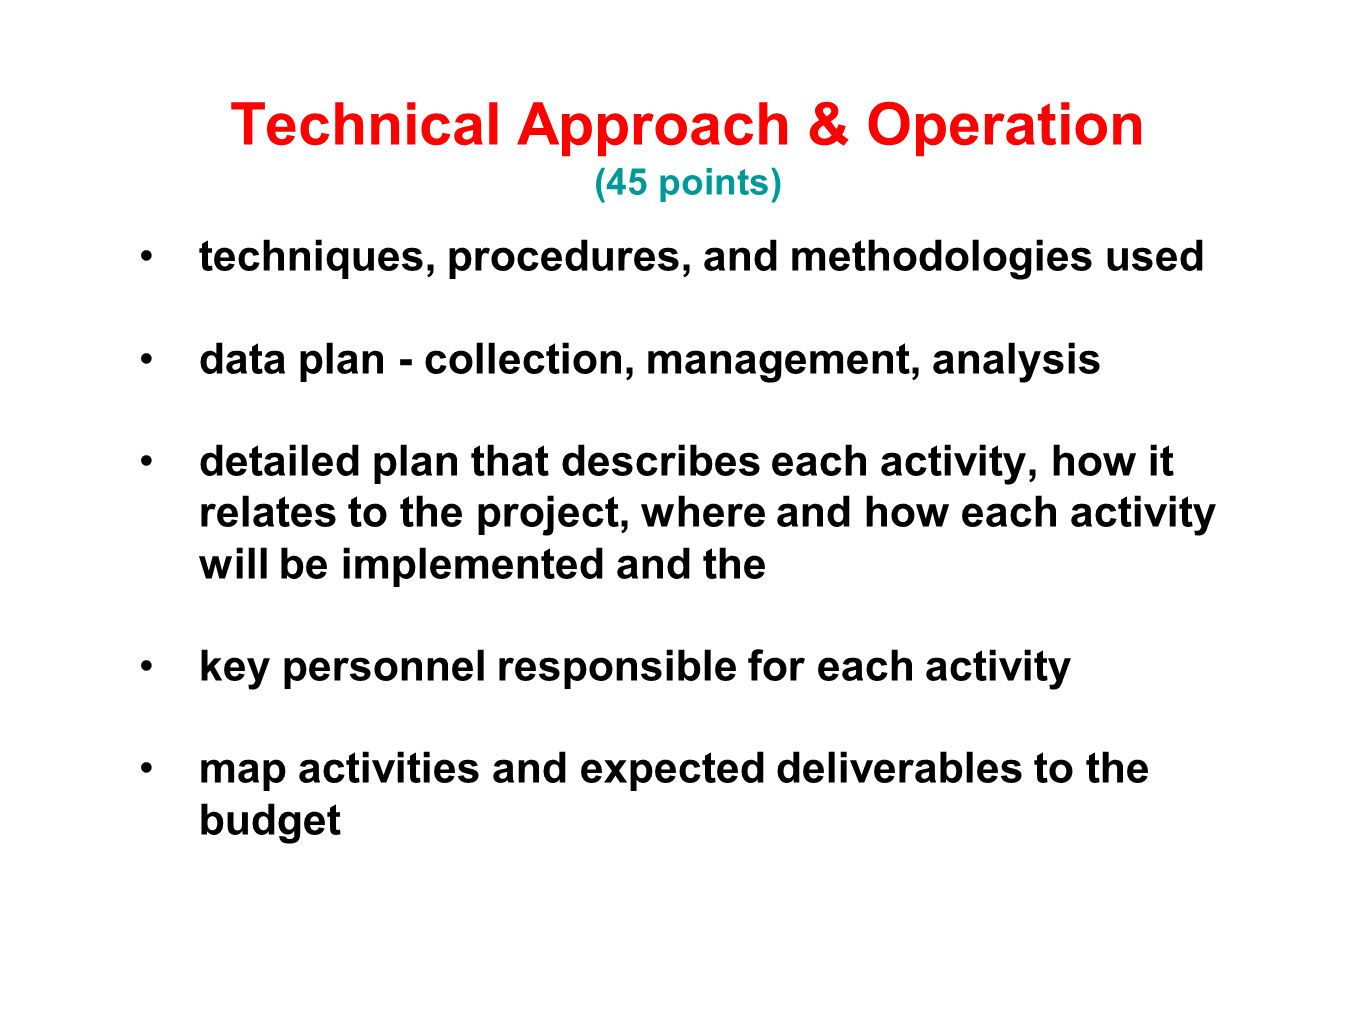 Technical Approach & Operation (45 points) techniques, procedures, and methodologies used data plan - collection, management, analysis detailed plan that describes each activity, how it relates to the project, where and how each activity will be implemented and the key personnel responsible for each activity map activities and expected deliverables to the budget